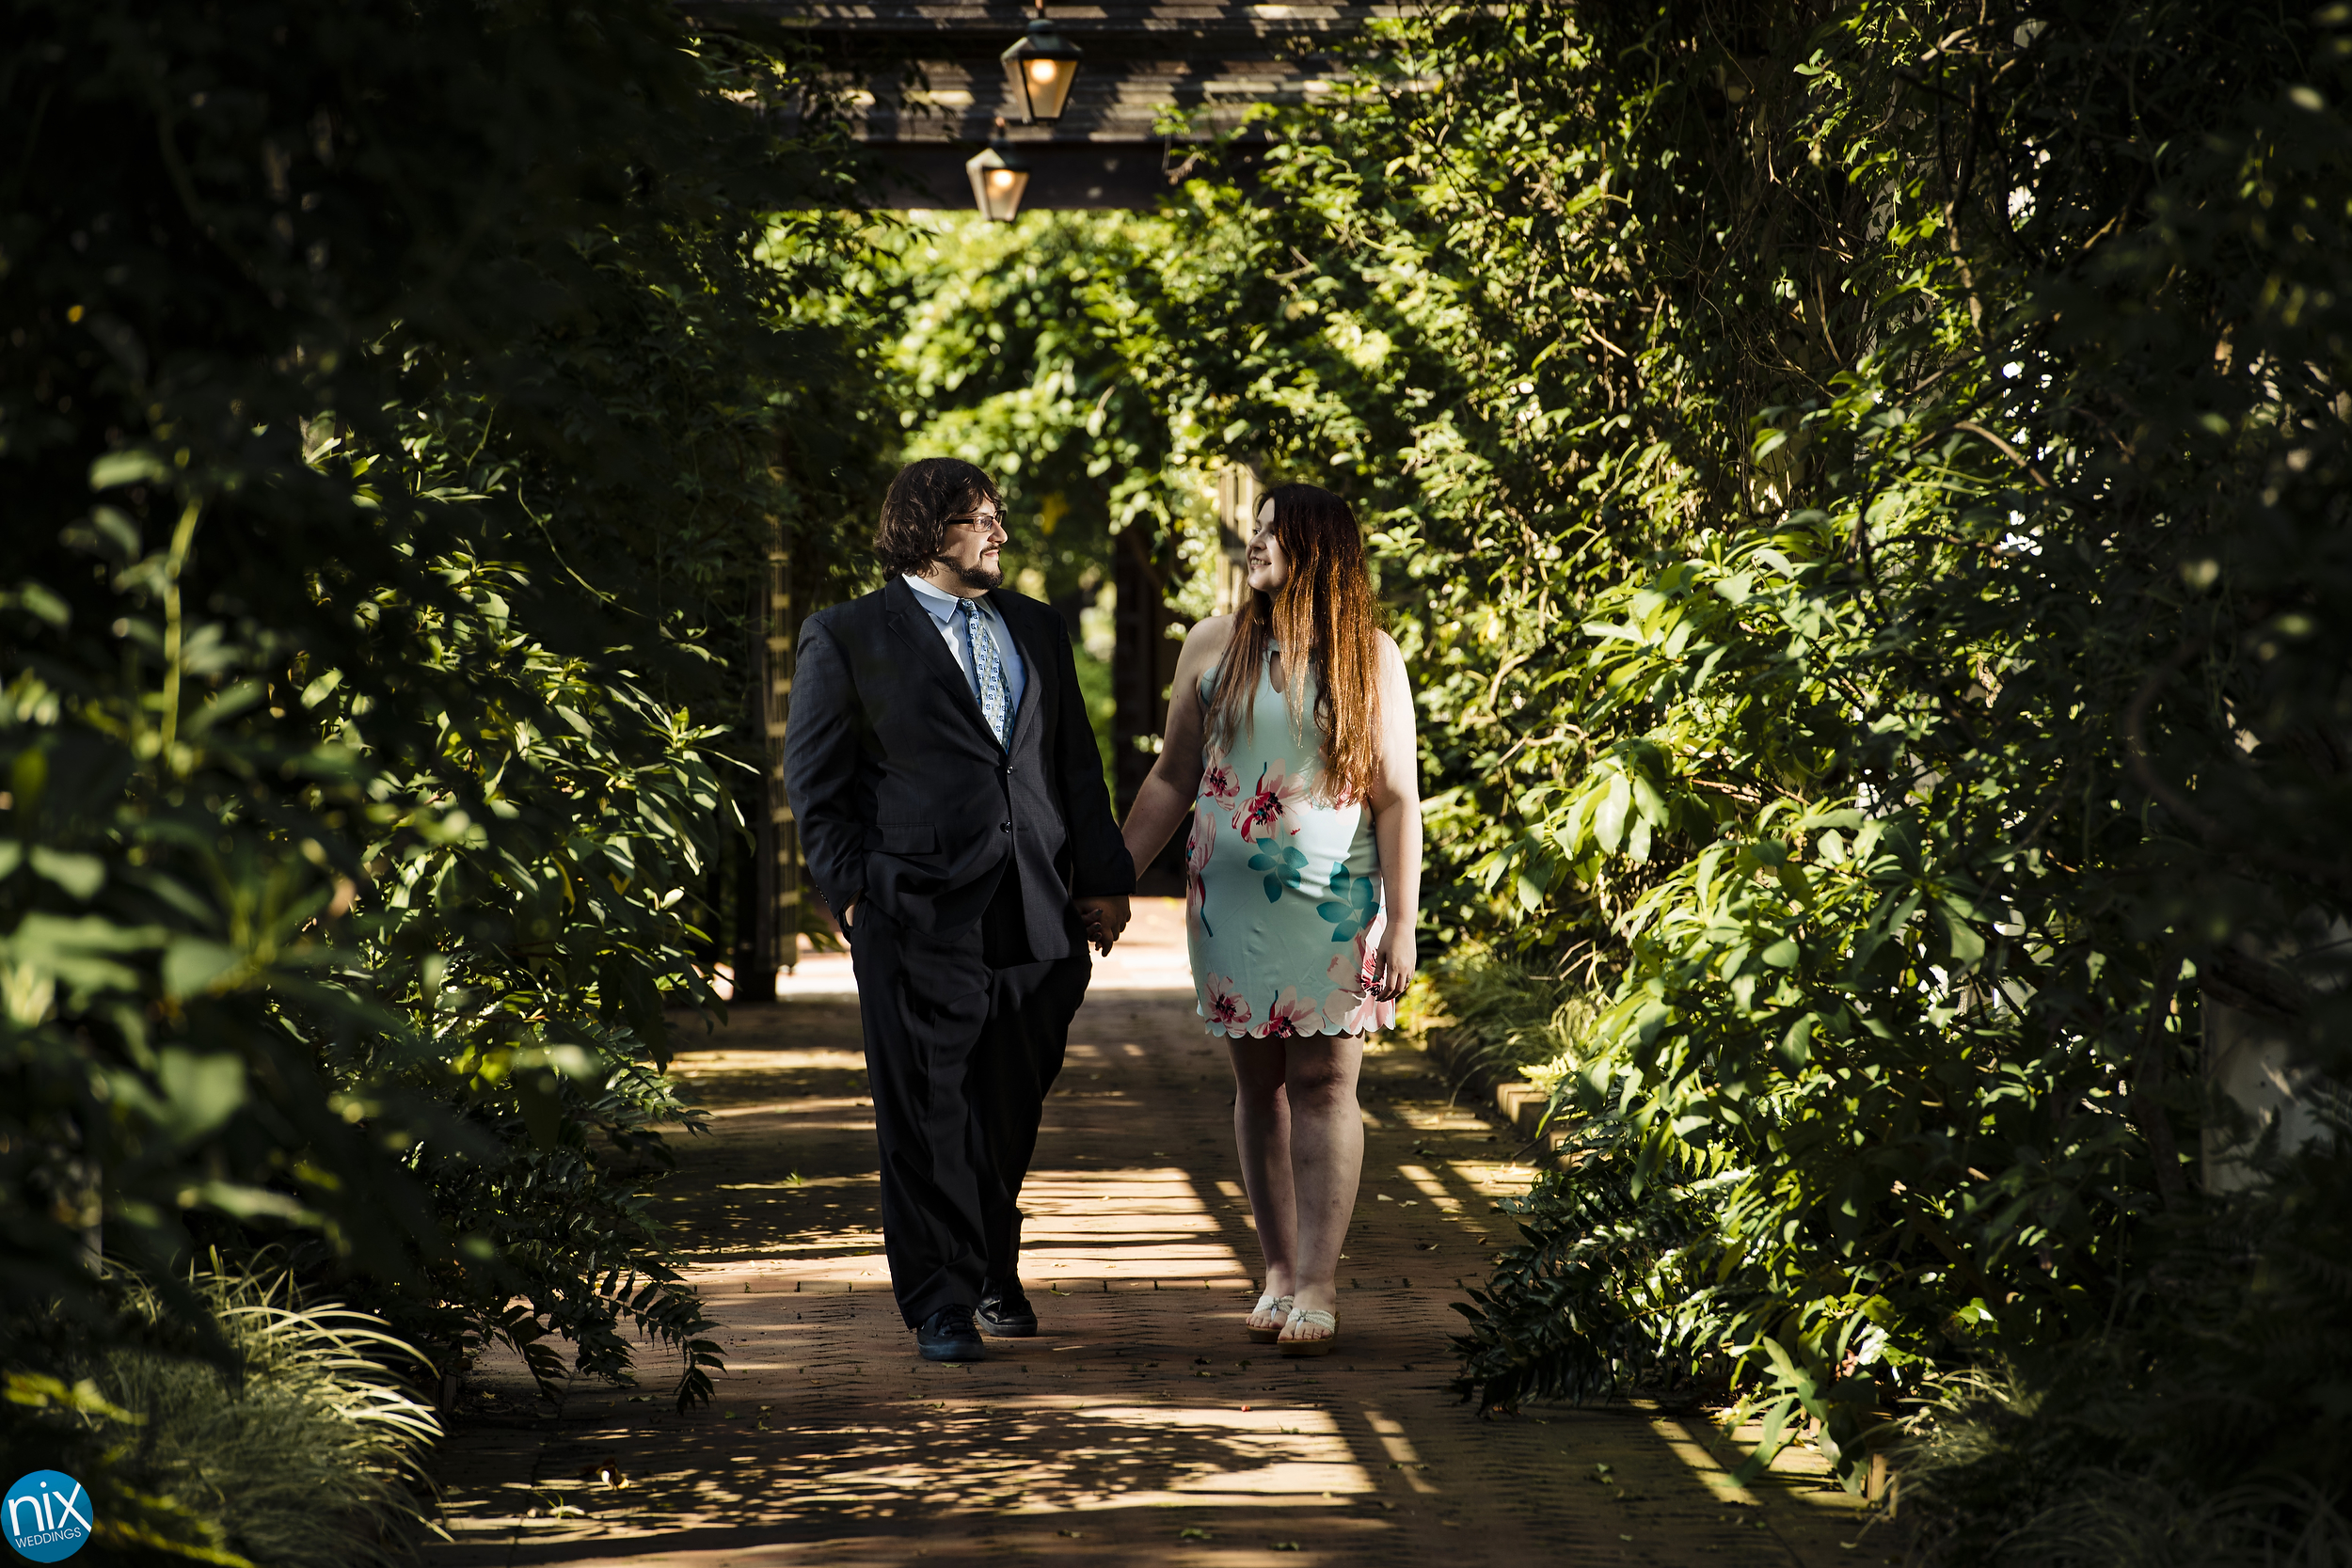 Holly and Alexander's Engagement at Daniel Stowe Botanical Gardens on Thursday, June 27, 2019.